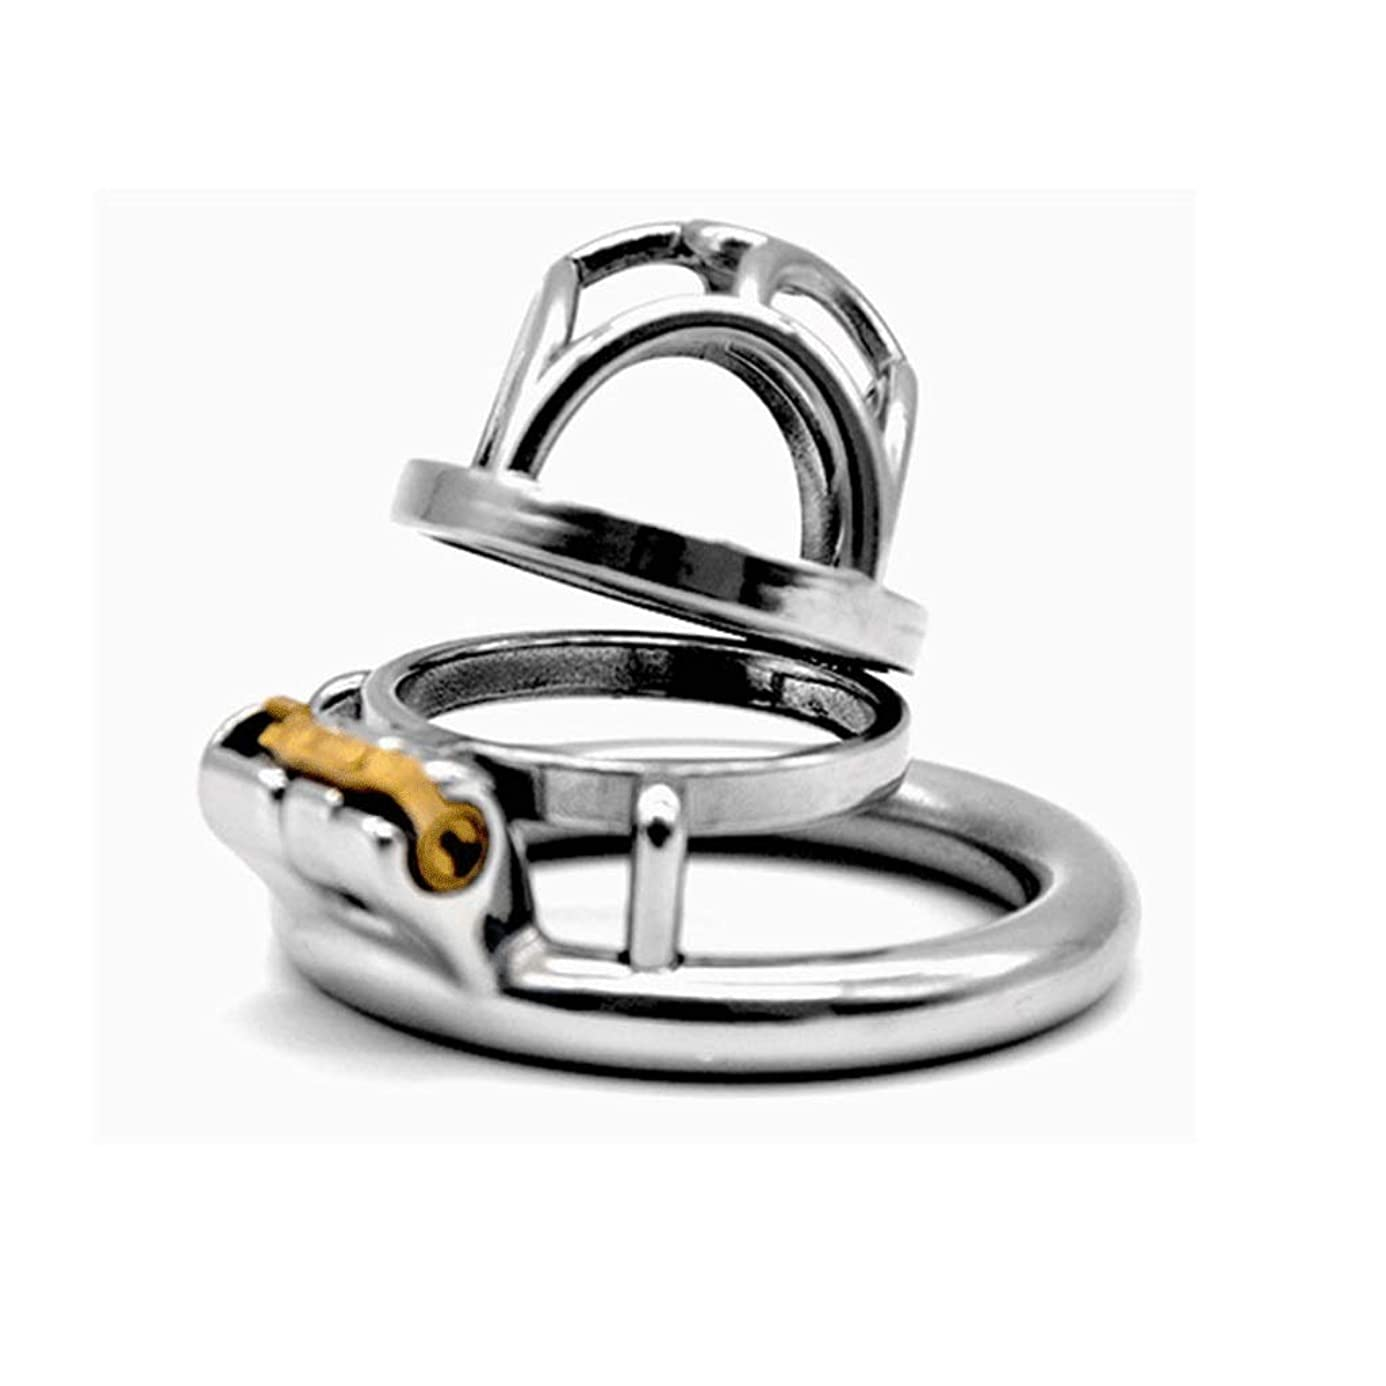 MXD Men's Waterproof Stainless Steel Chastity Lock Short Chicken Cage Design Ventilation Comfortable and Convenient